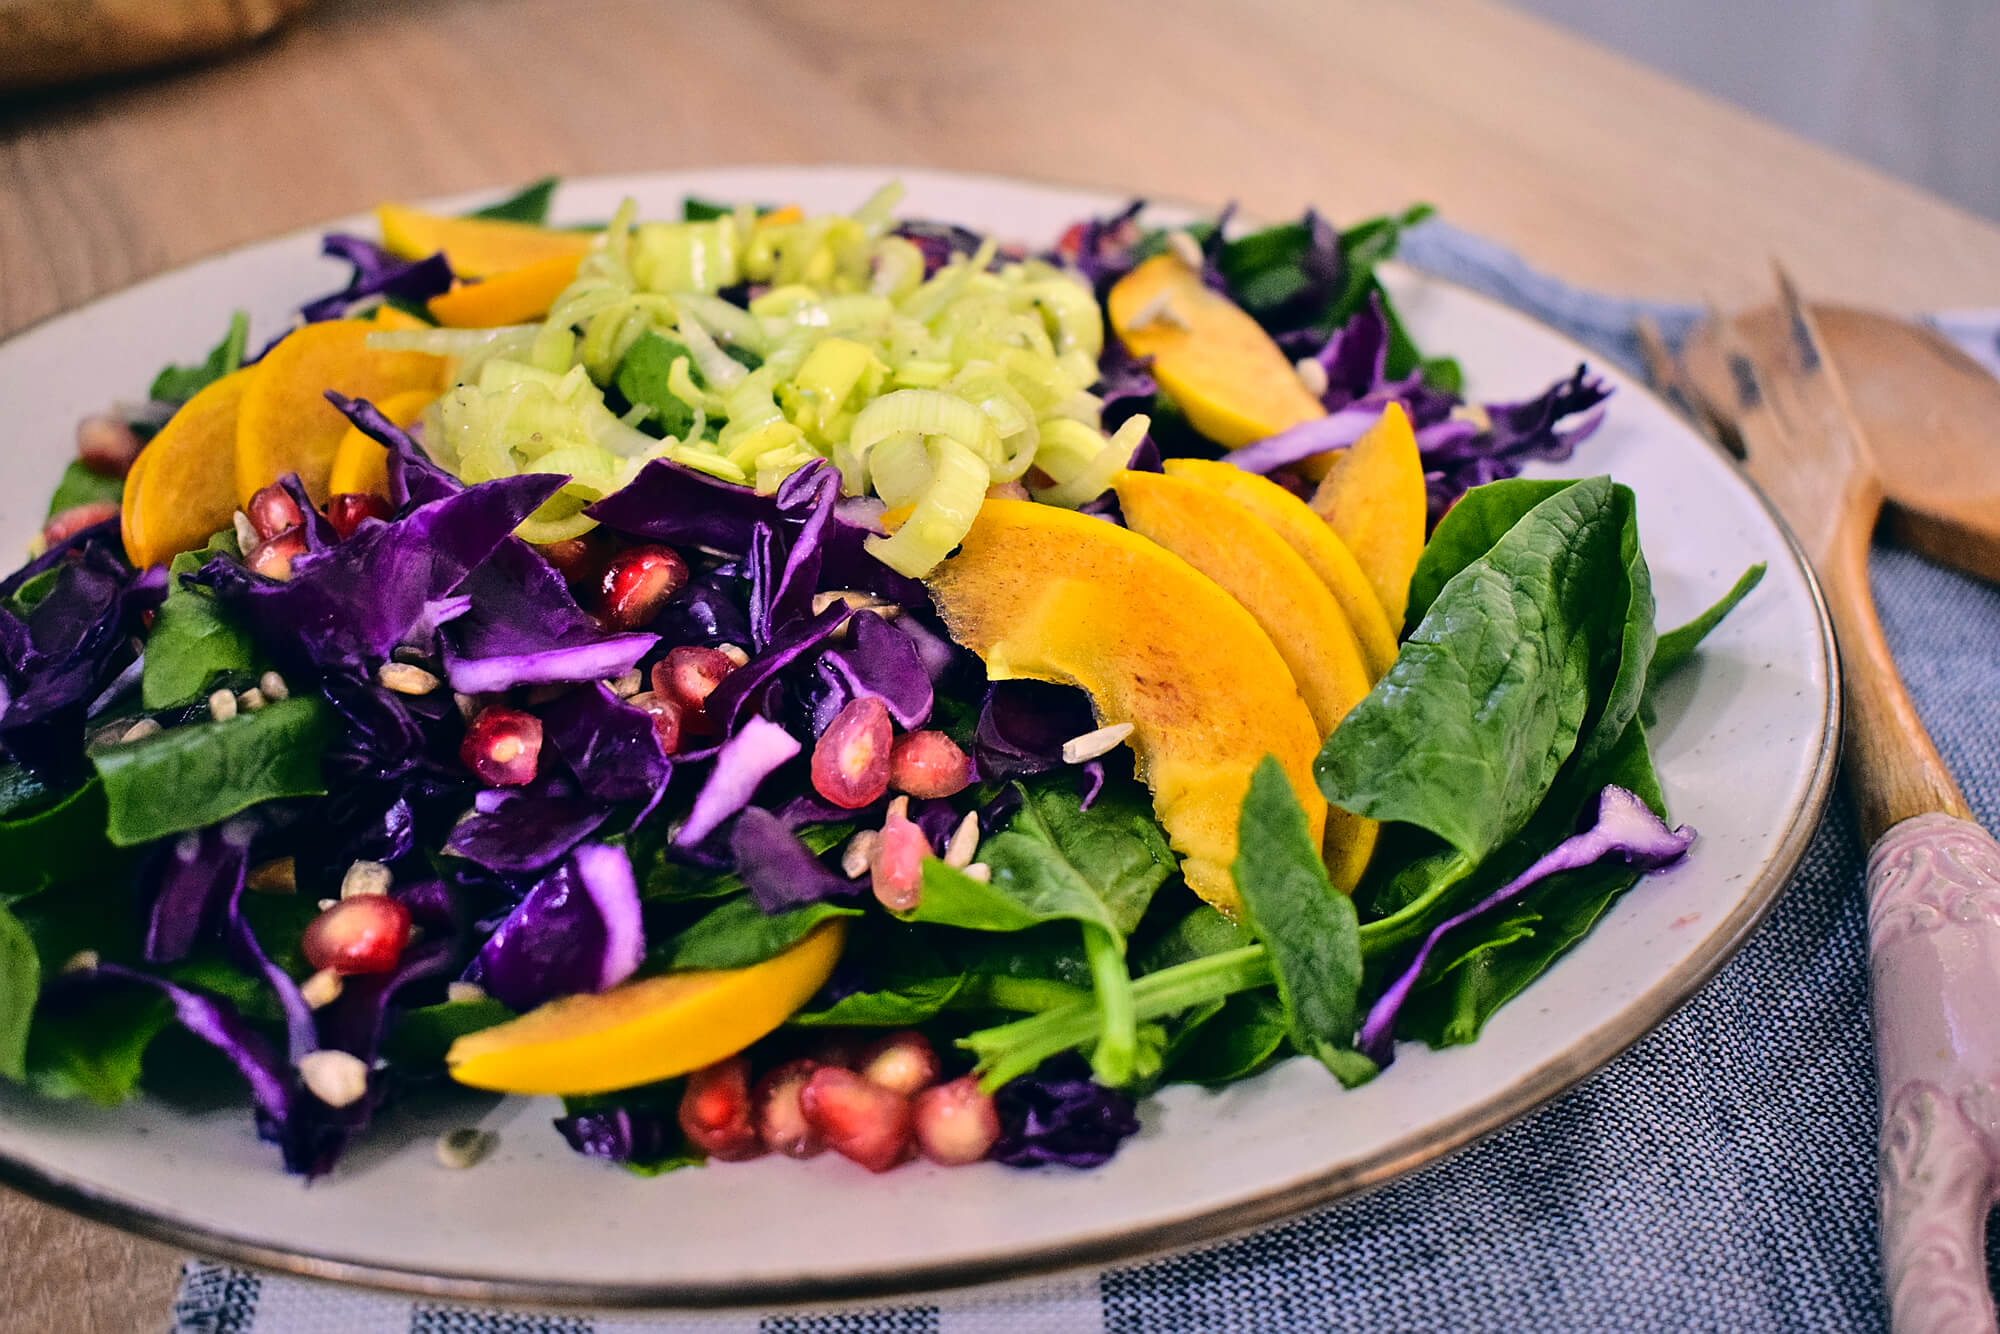 Persimmon Spinach Salad with Leek Dressing